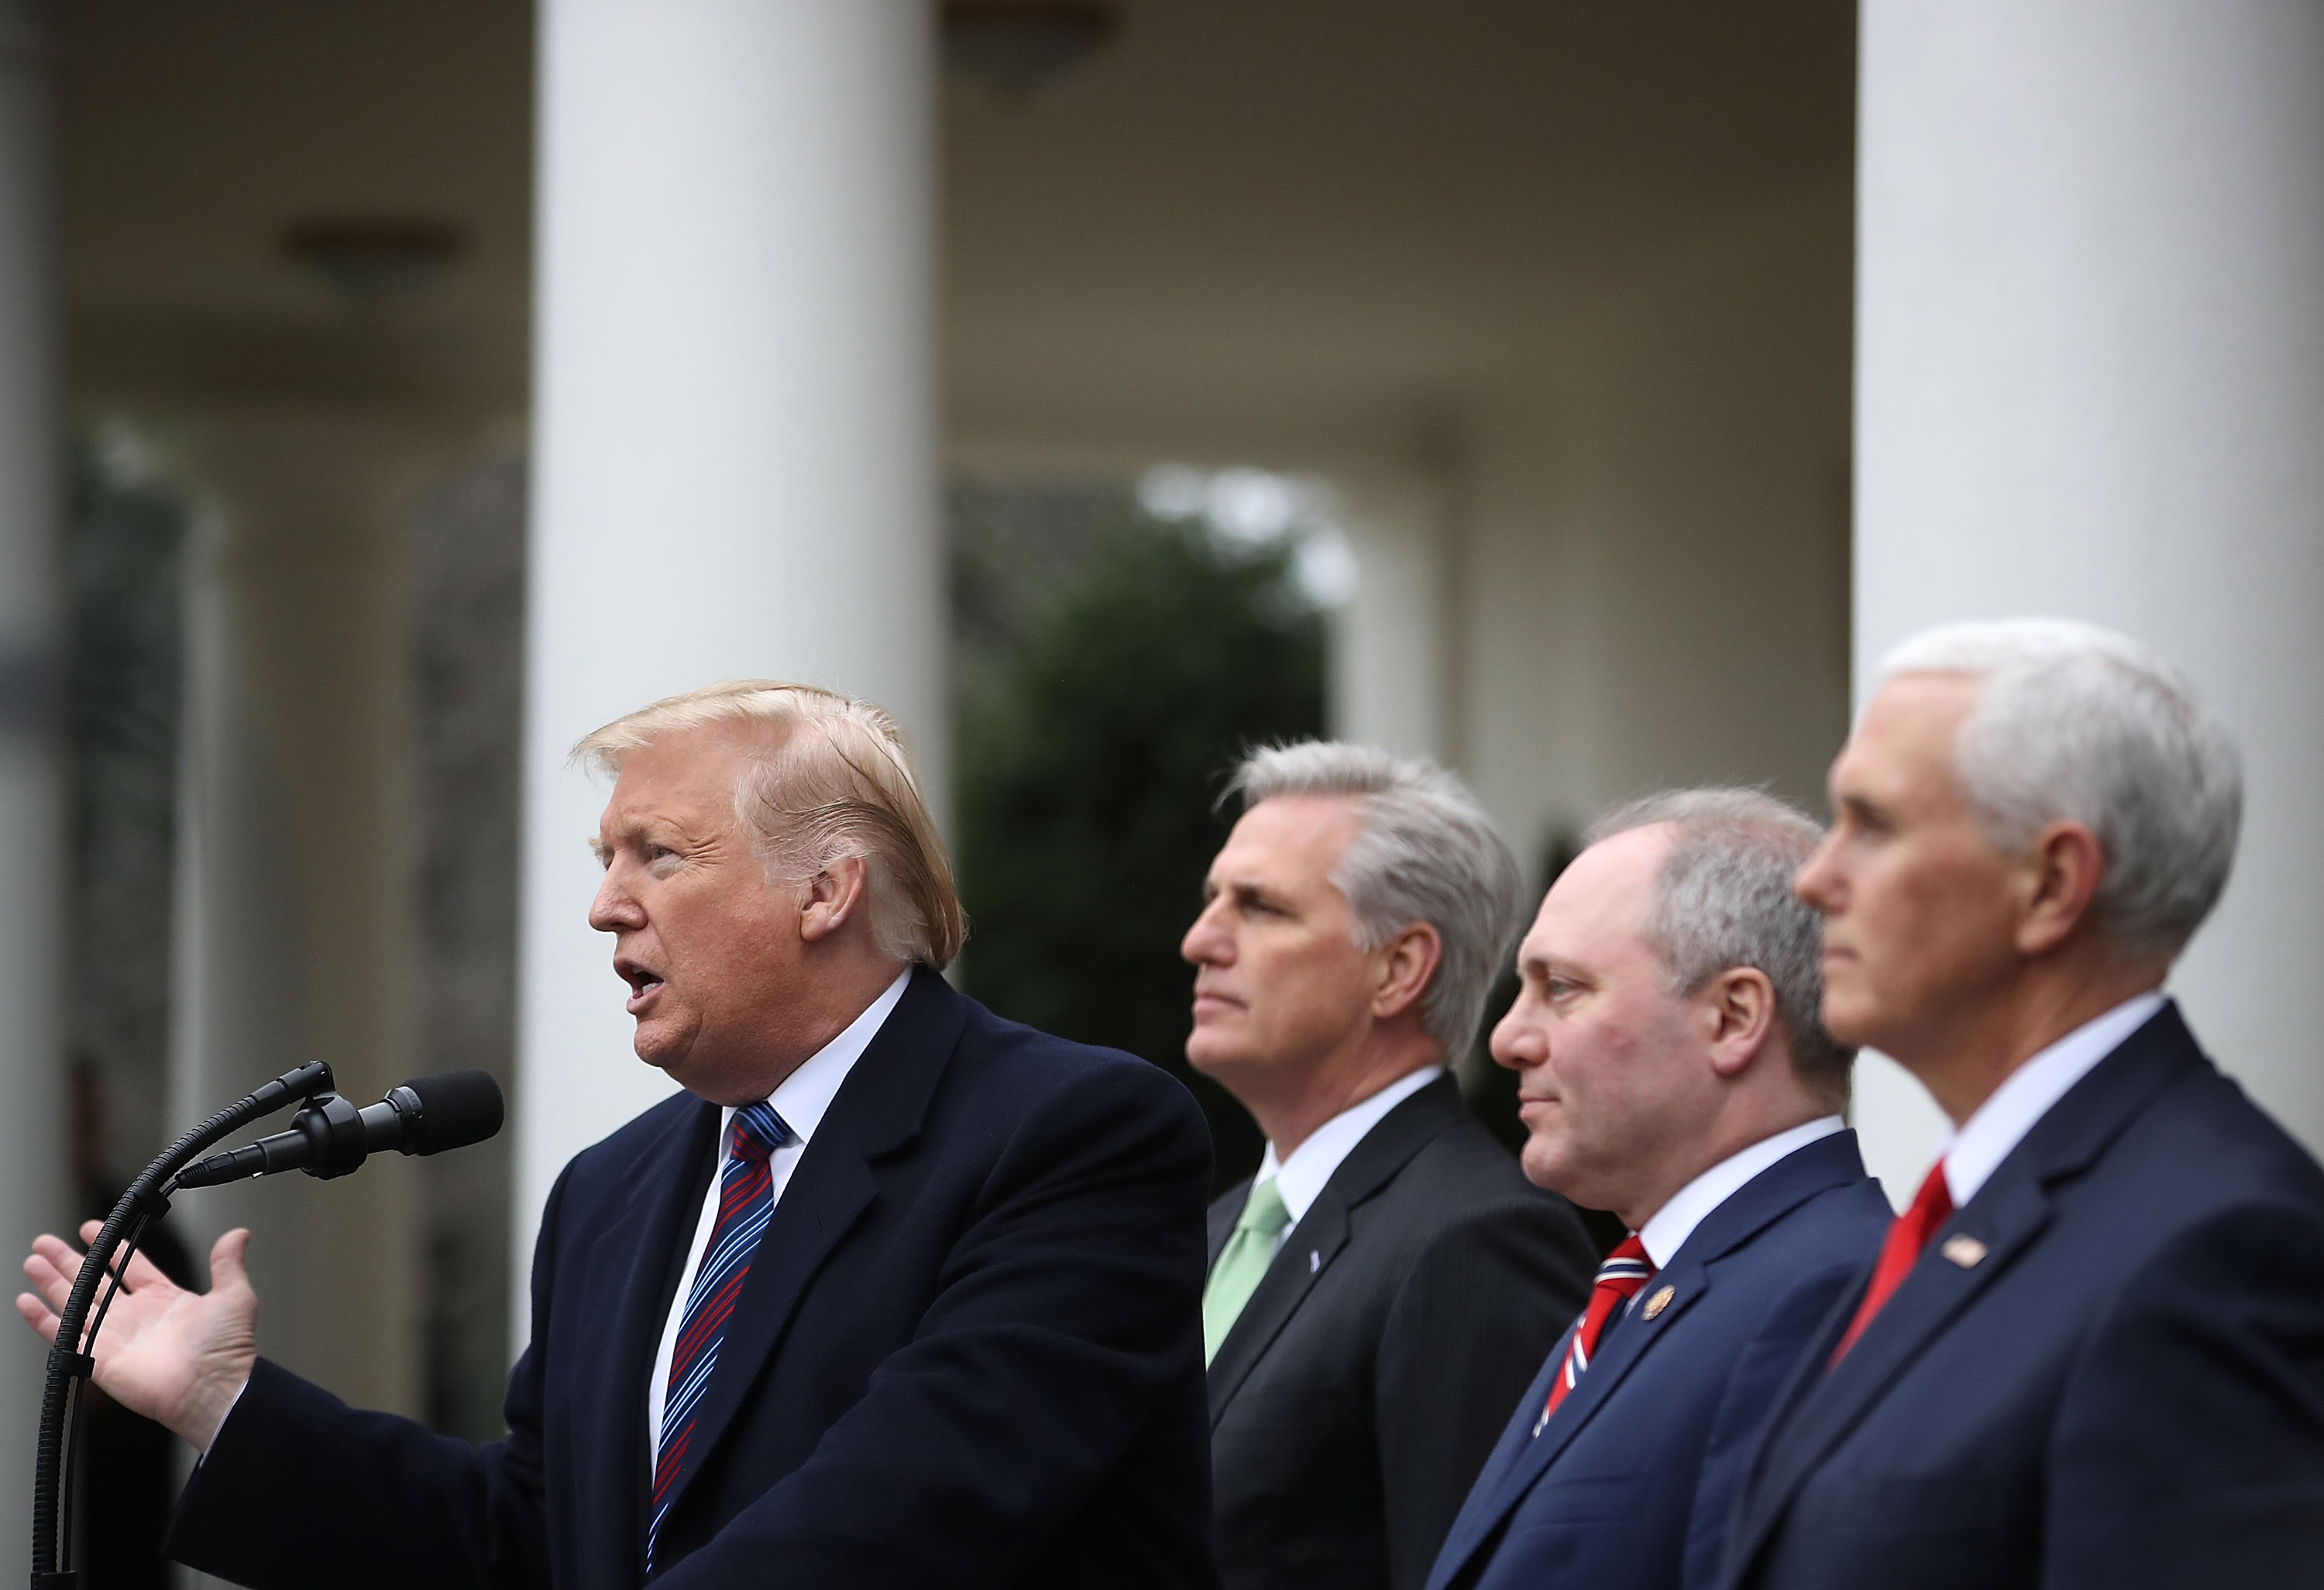 WASHINGTON, DC - JANUARY 04: U.S. President Donald Trump (L) is flanked by Vice President Mike Pence (R), House Minority Leader Kevin McCarthy (R-CA) and Rep. Steve Scalise (R-LA) while speaking to the media after a meeting with Congressional leaders about ending the partial government shutdown, in the Rose Garden at the White House on January 4, 2019 in Washington, DC. The U.S government is going into the 13th day of a partial shutdown with Republicans and Democrats at odds on agreeing with President Donald Trump's demands for more money to build a wall along the U.S.-Mexico border.